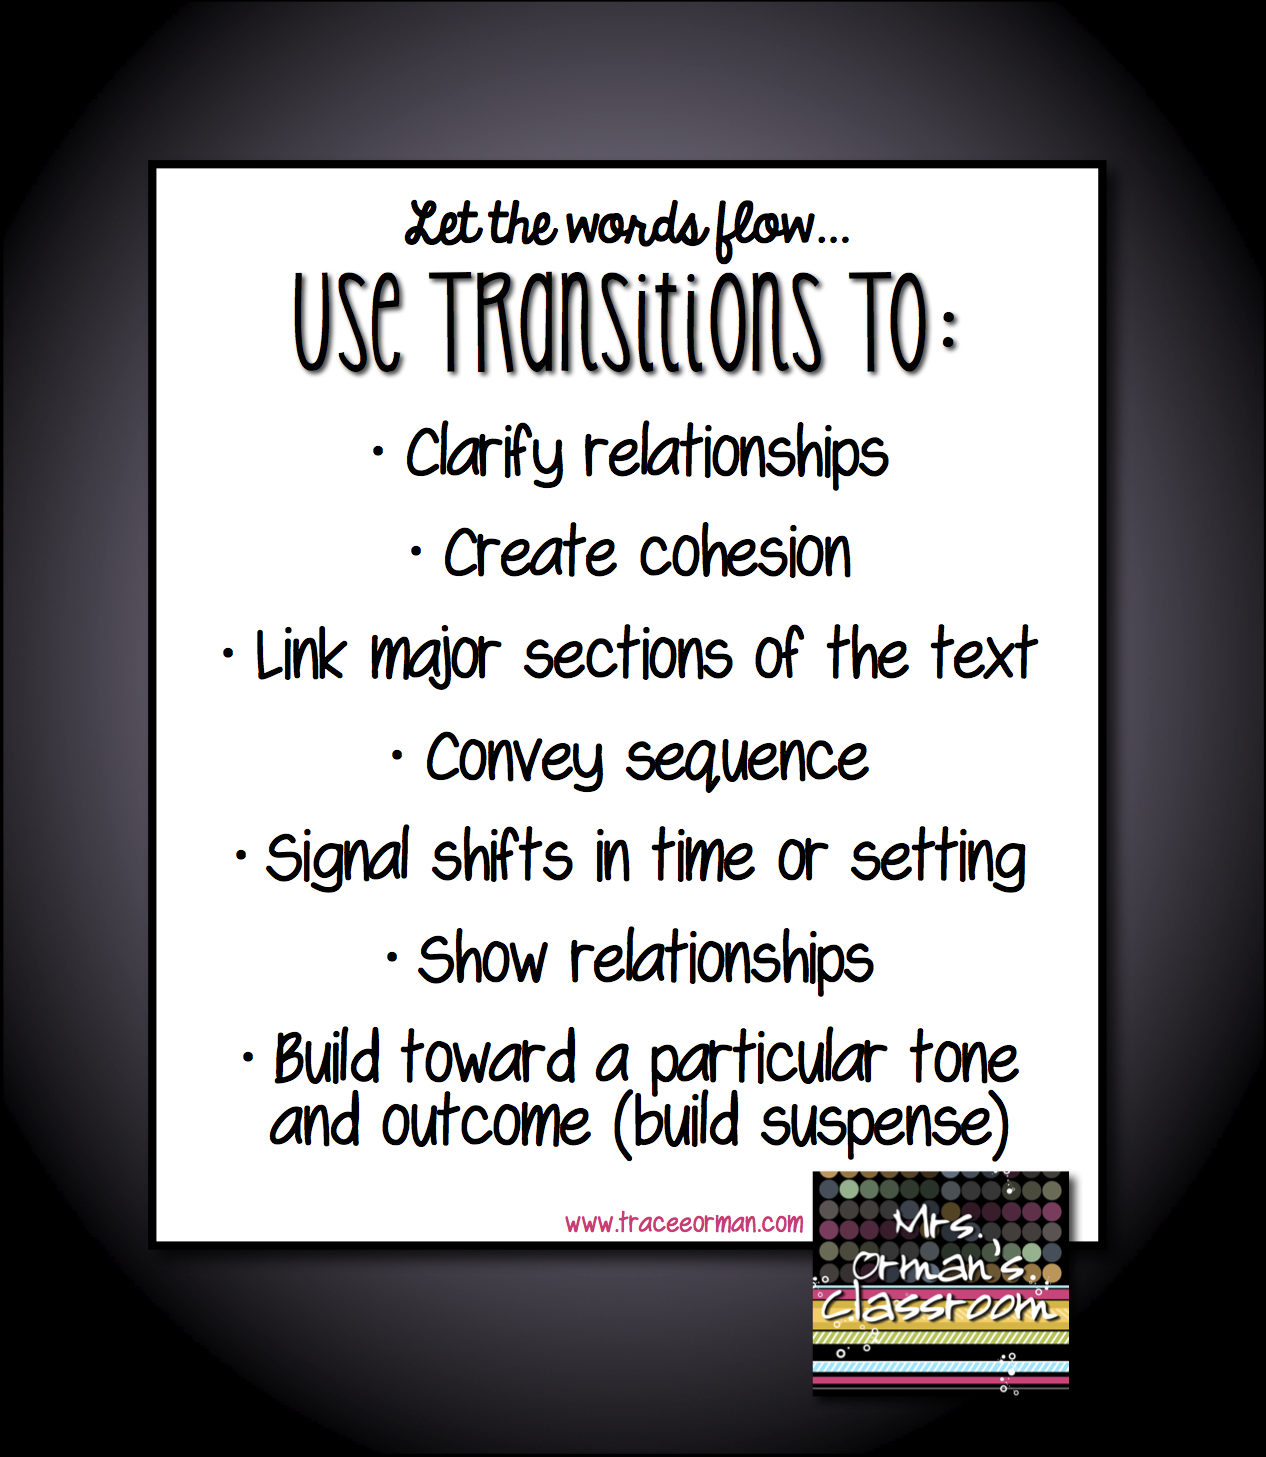 transition quotes essay How to use quotes effectively  most, if not all, of your college professors will require you to use research material as a vital component of your writing.